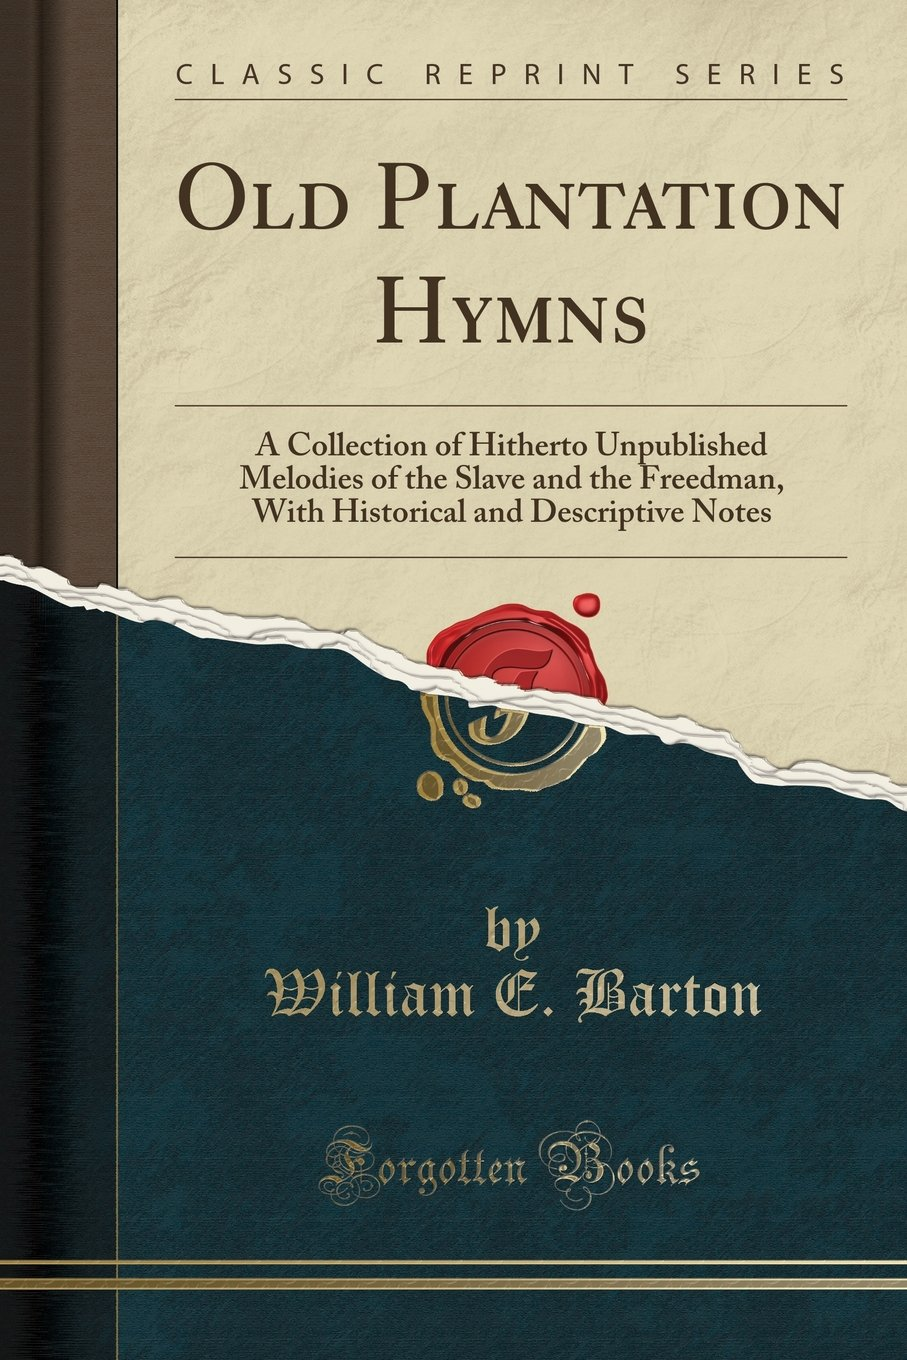 Old Plantation Hymns: A Collection of Hitherto Unpublished Melodies of the Slave and the Freedman, With Historical and Descriptive Notes (Classic Reprint)